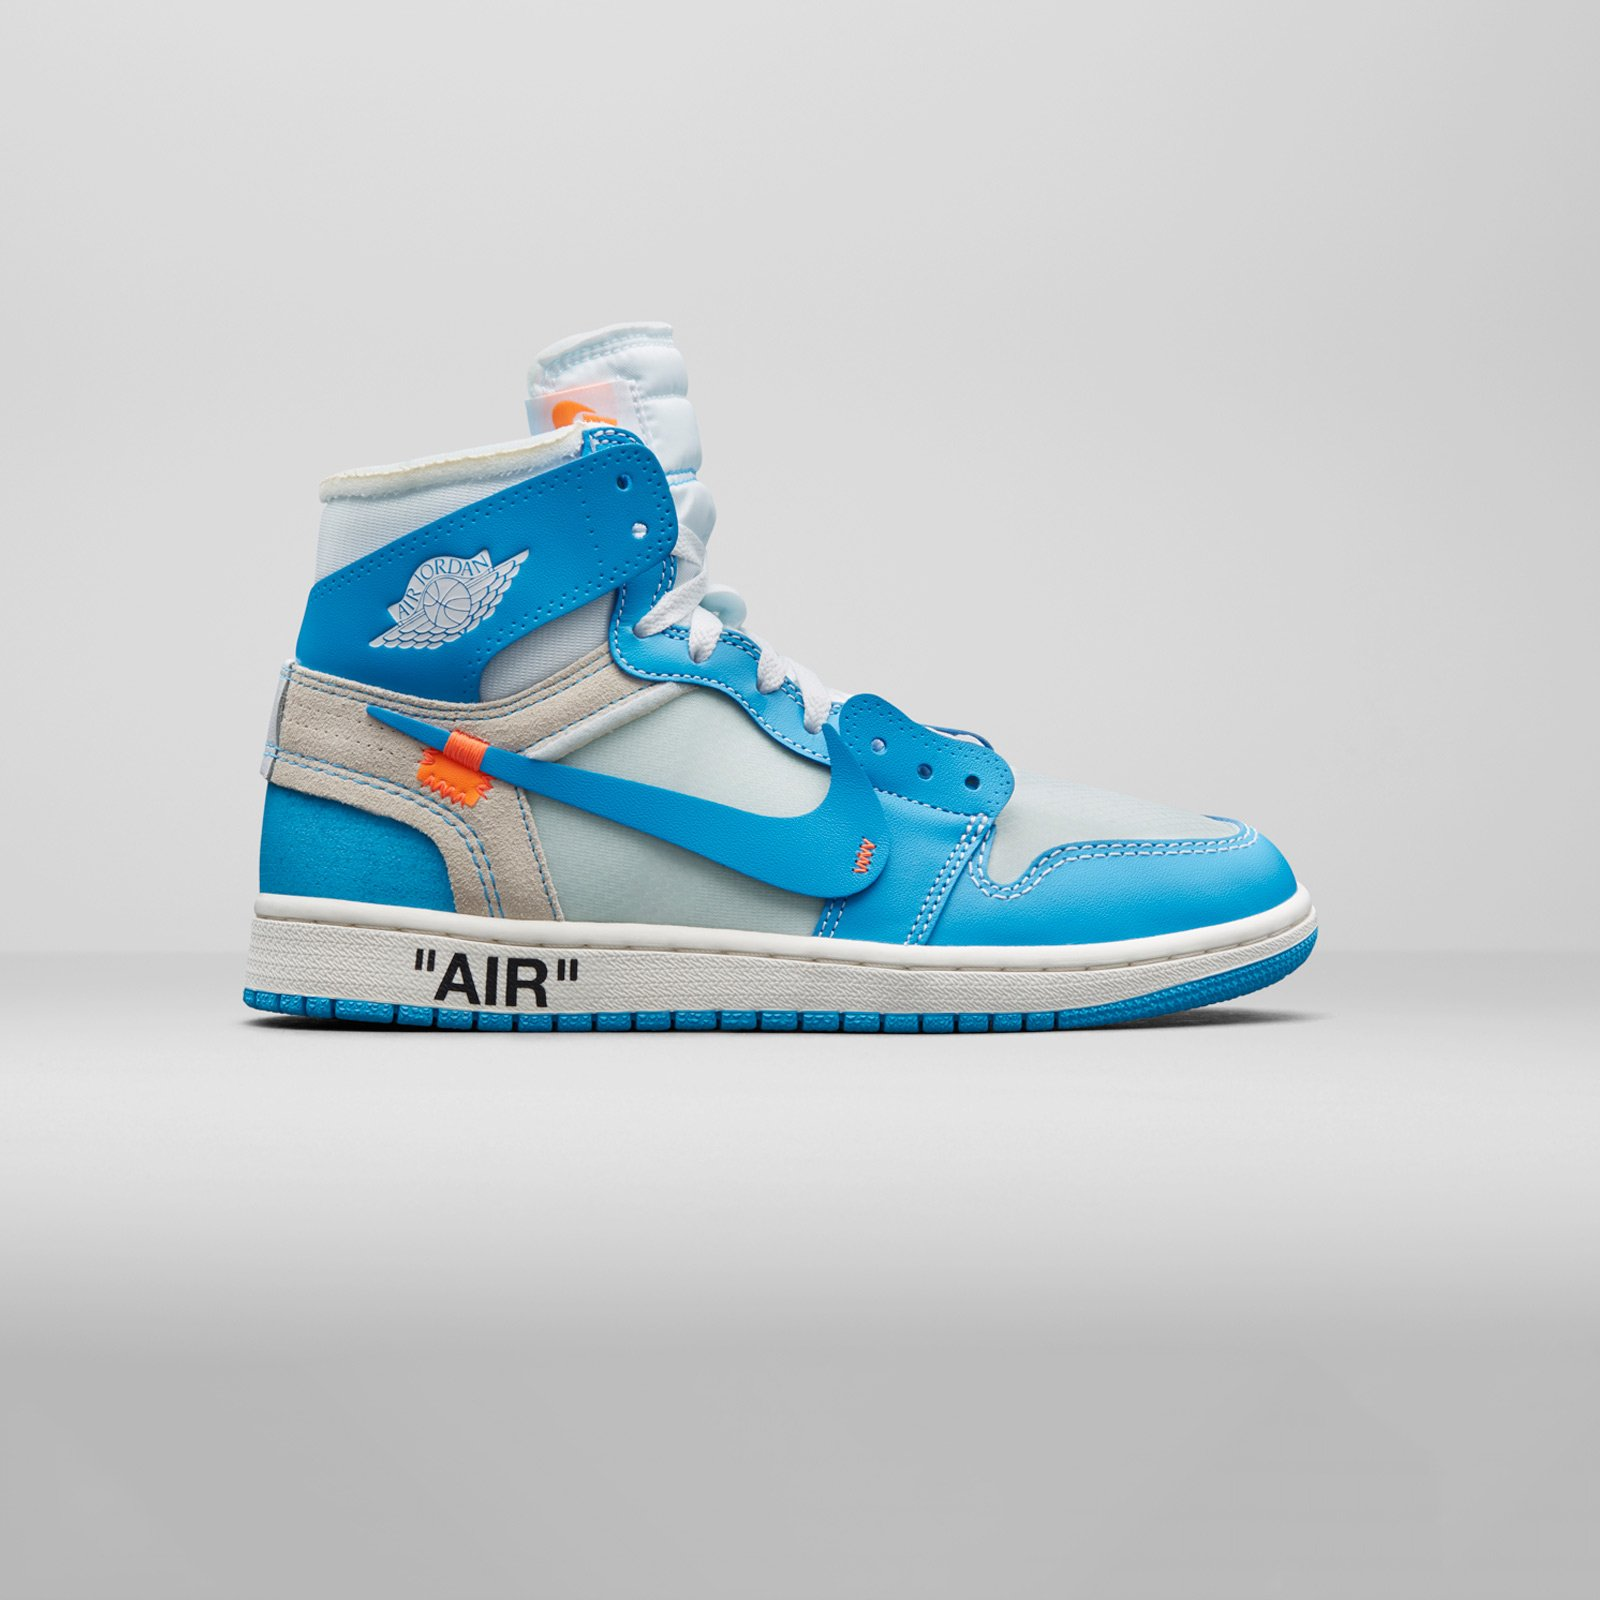 Air Jordan 1 X Off White NRG